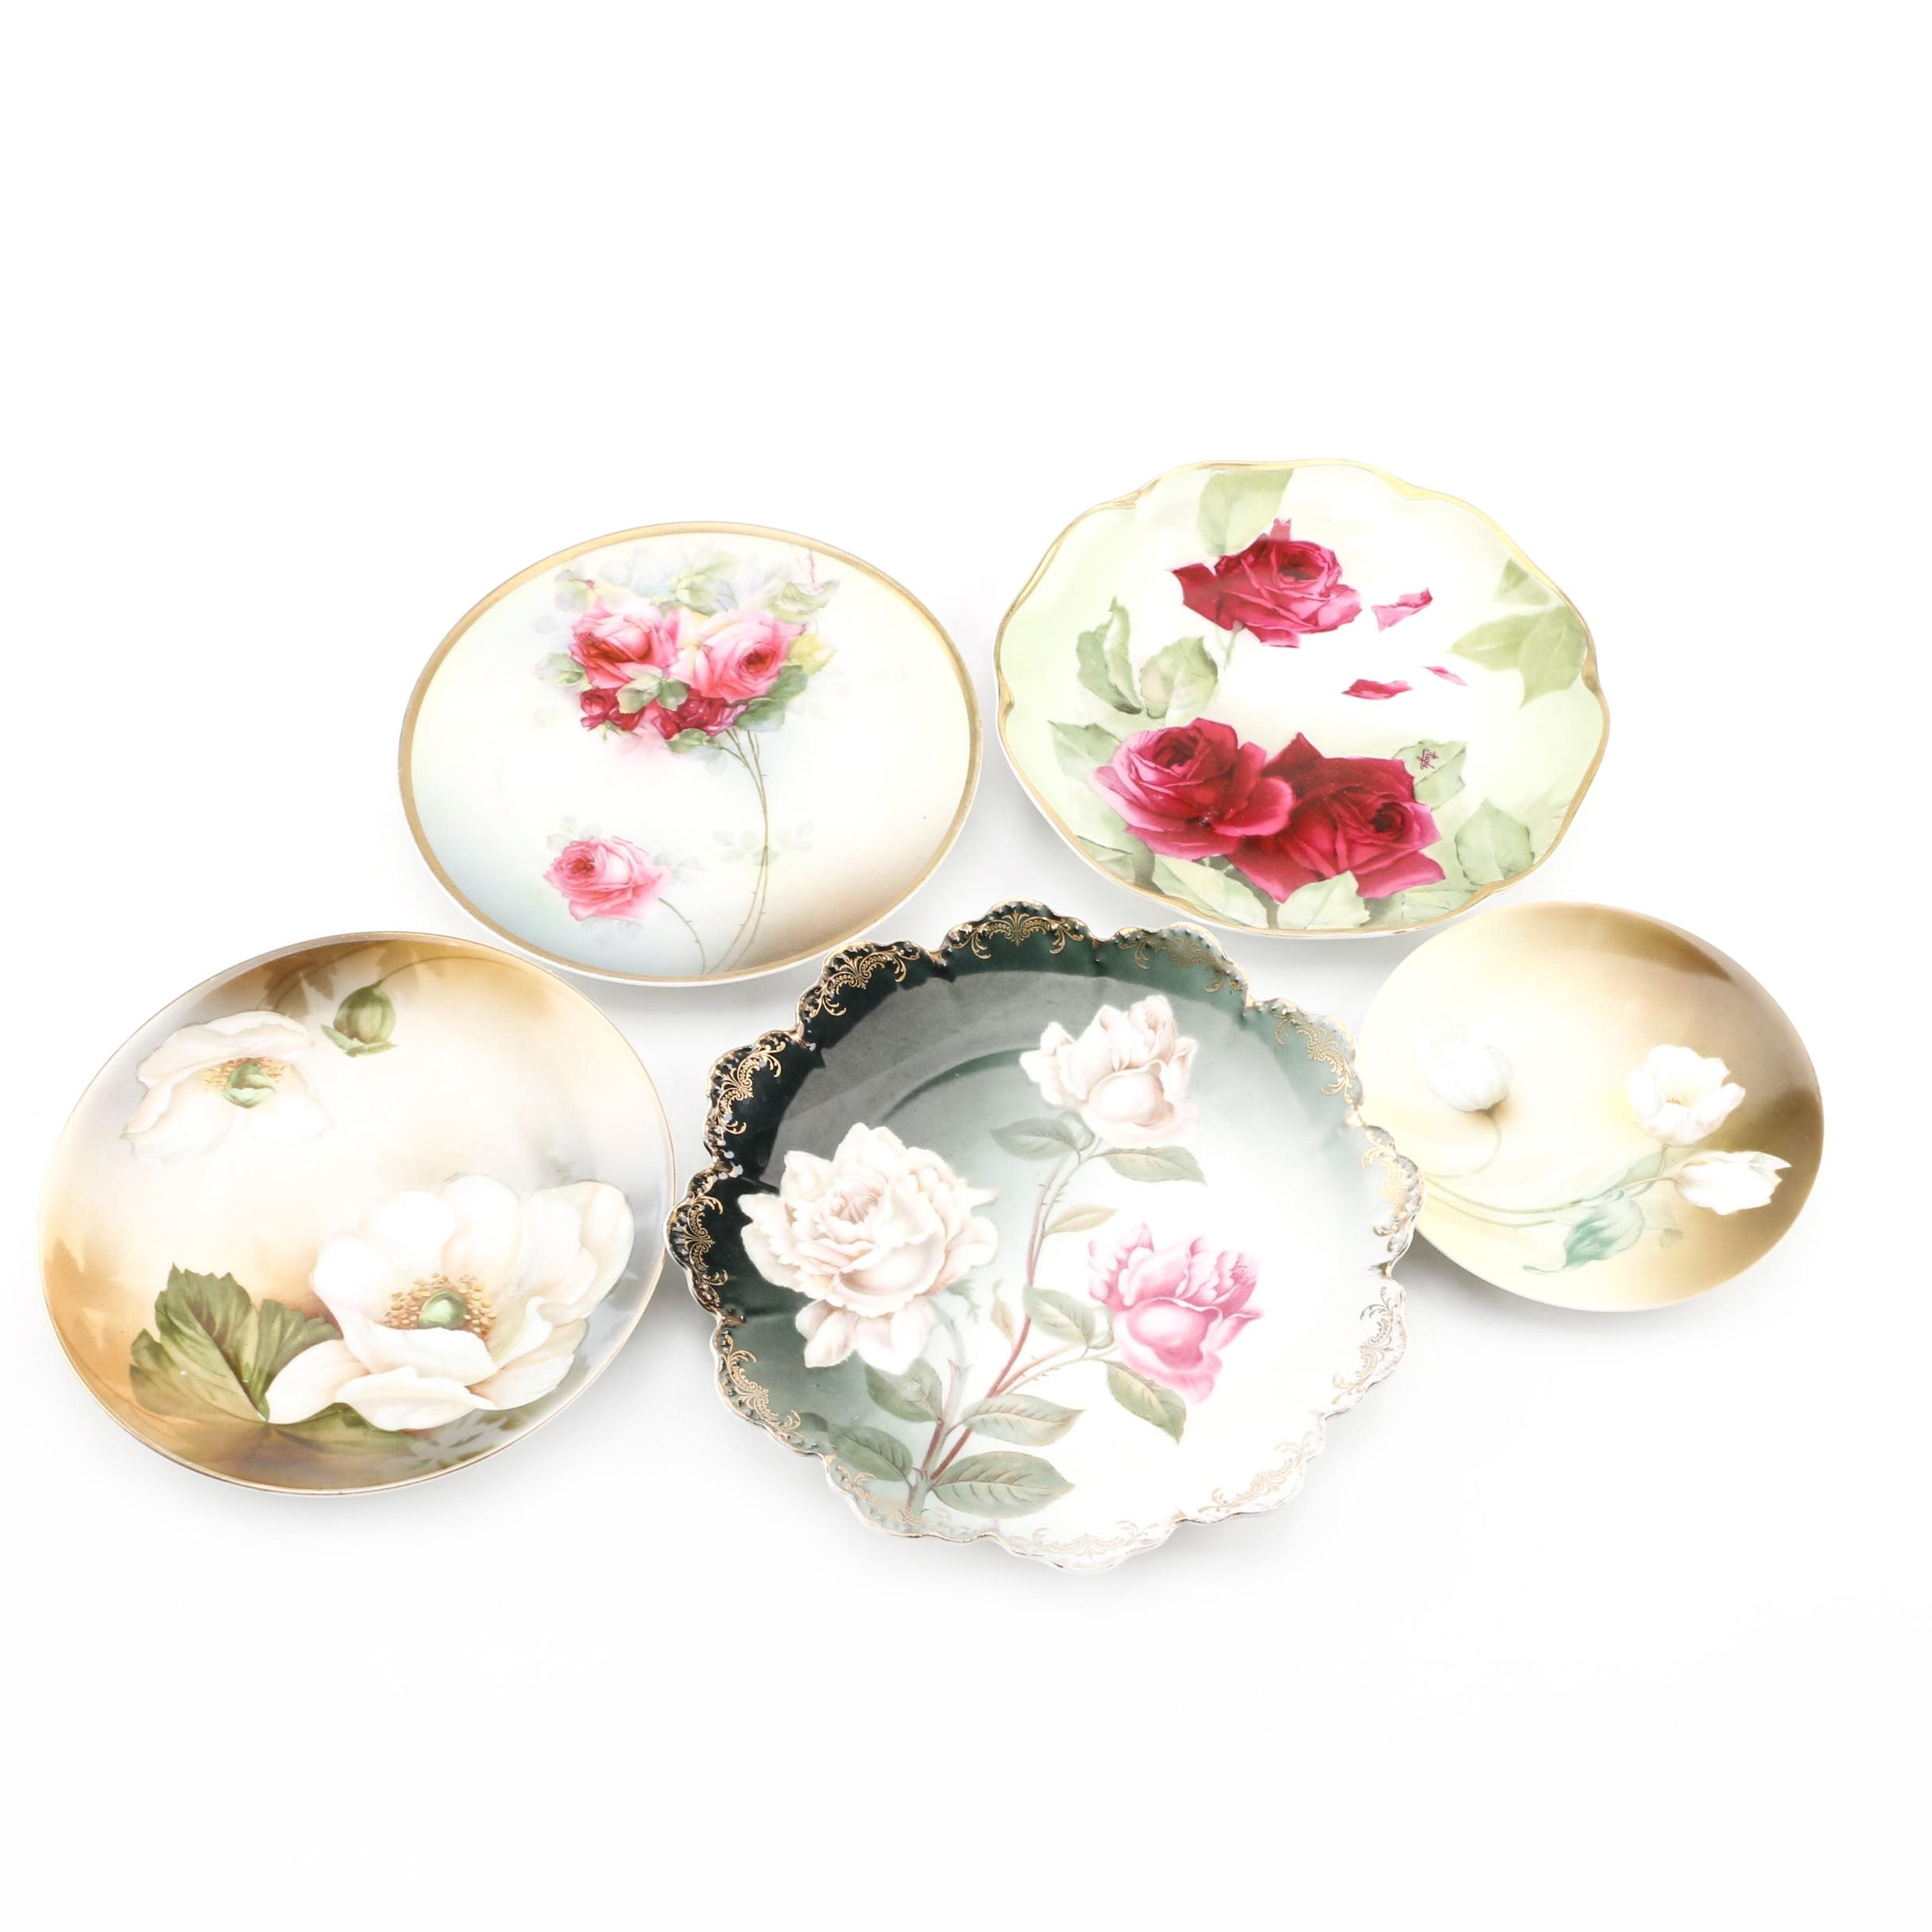 Antique Hand Painted Porcelain Plates Including Rosenthal